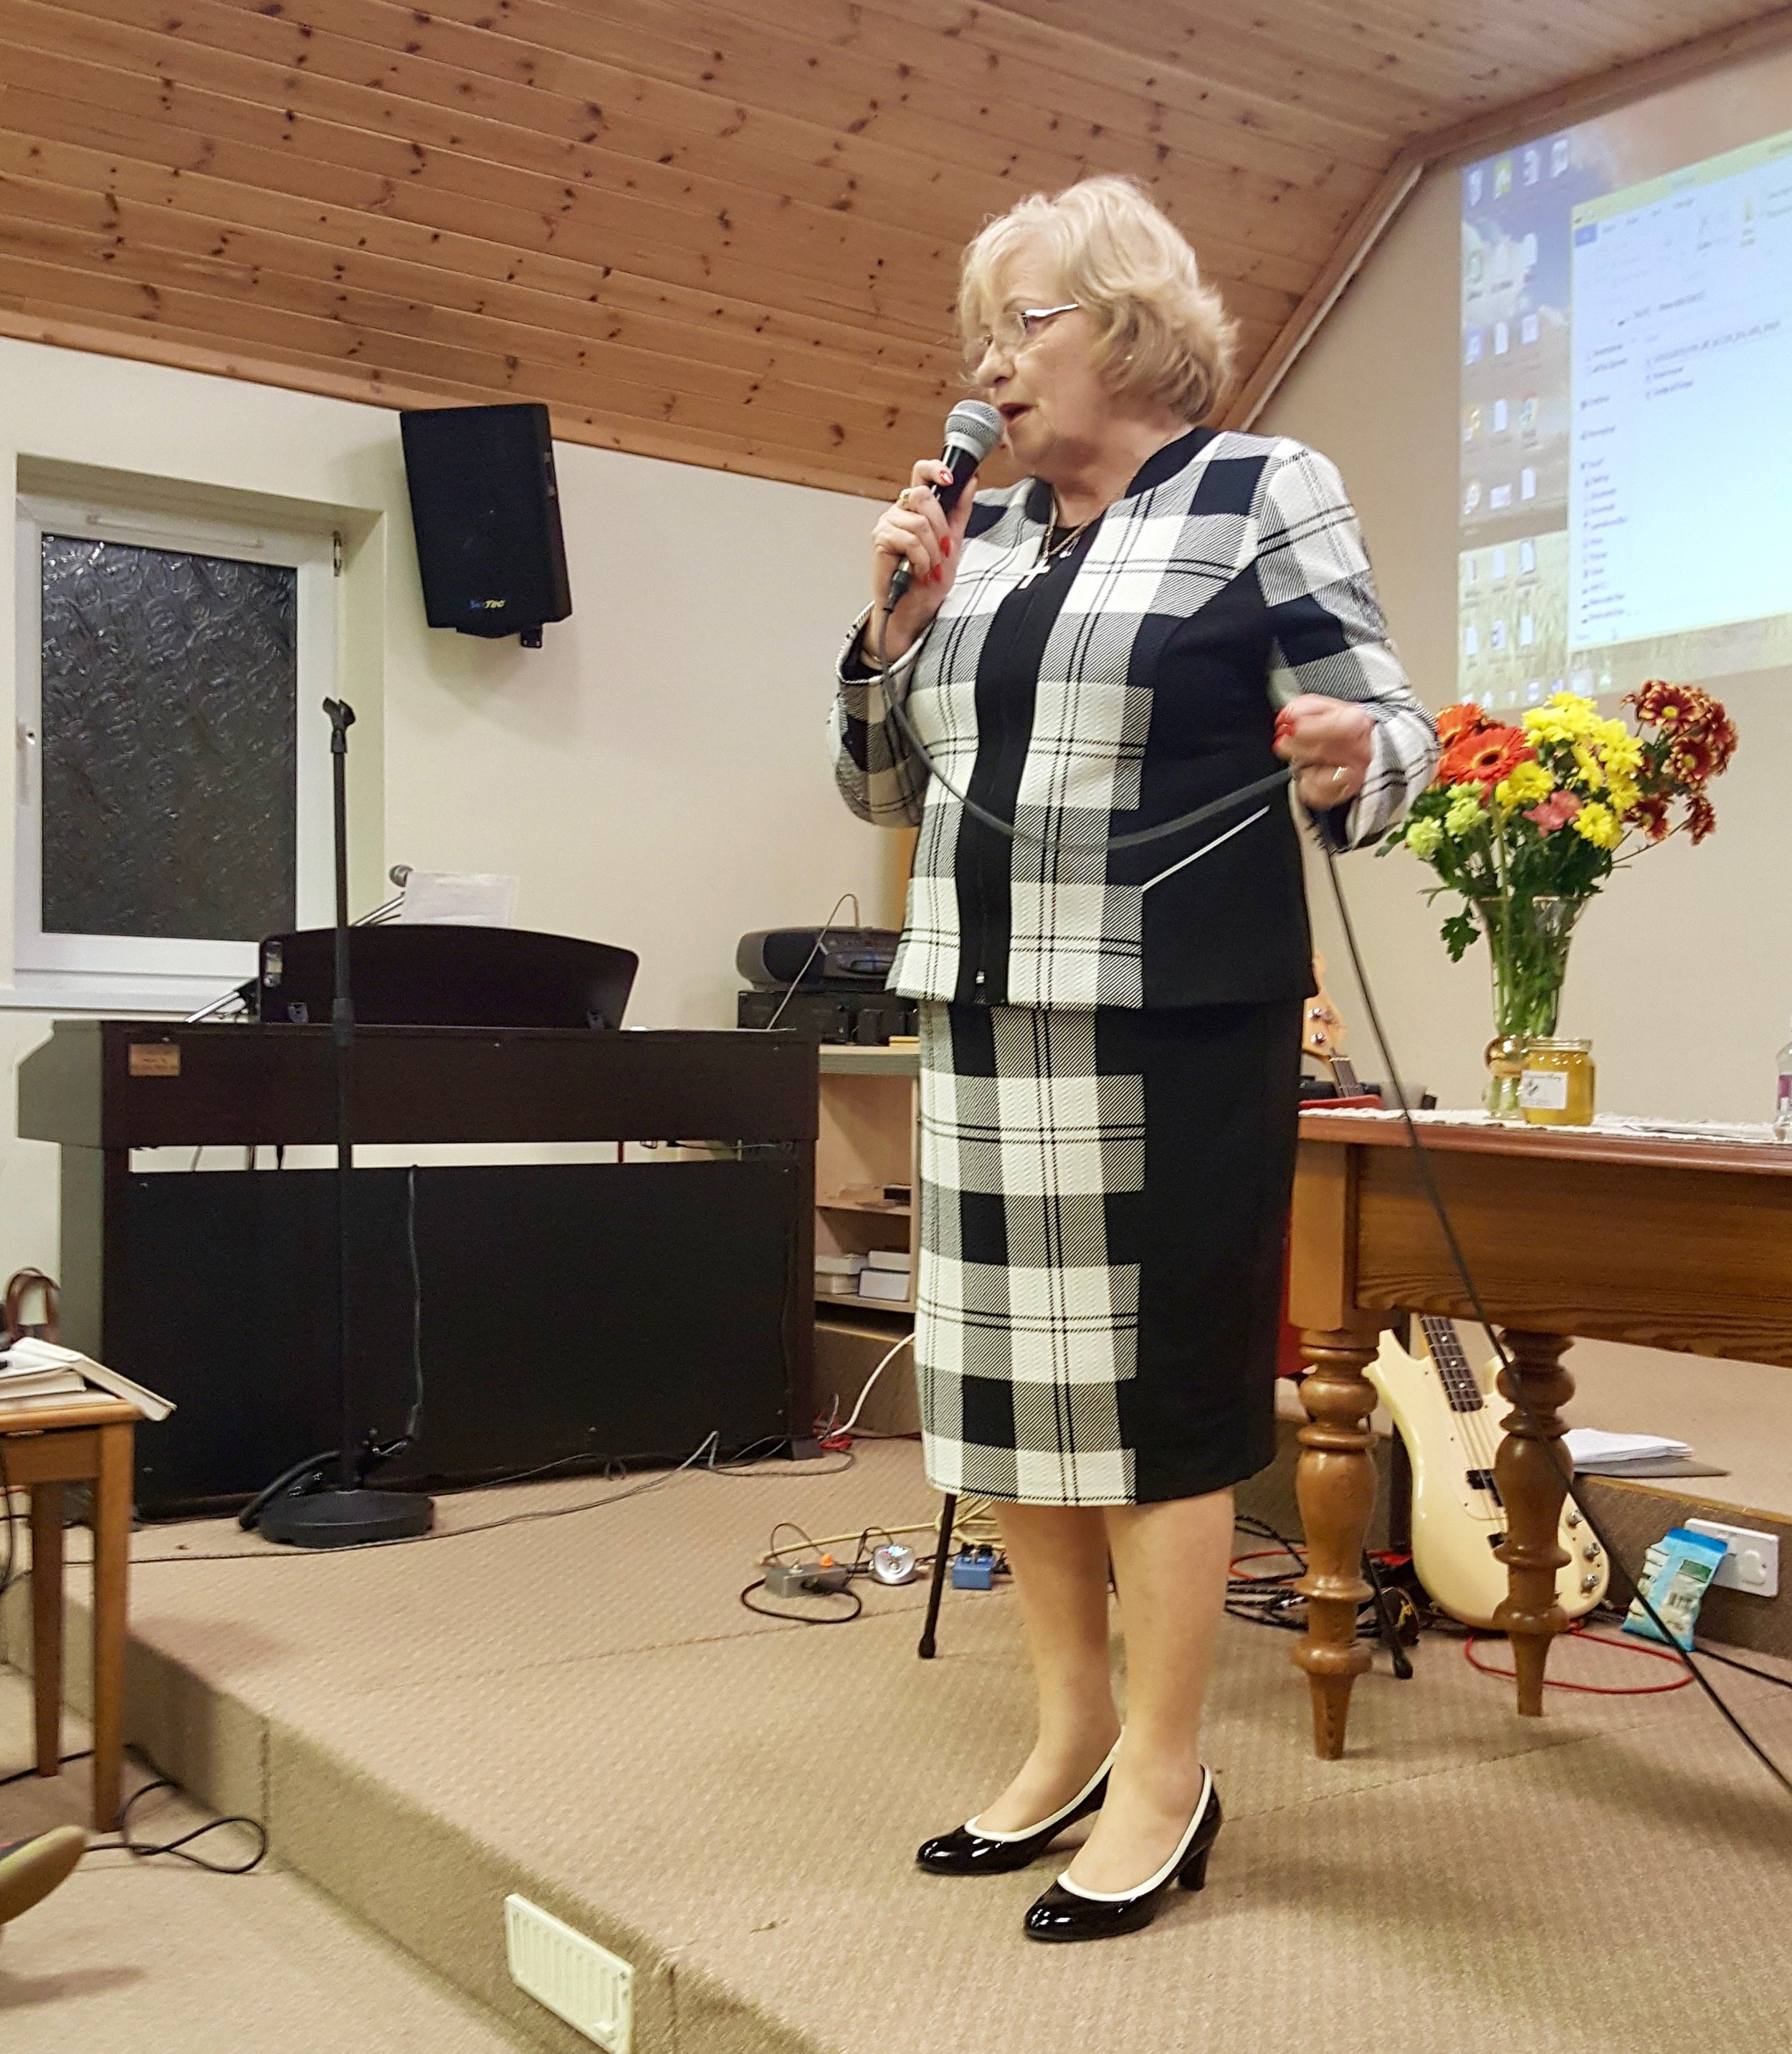 April talks of the Lord's work in Romania